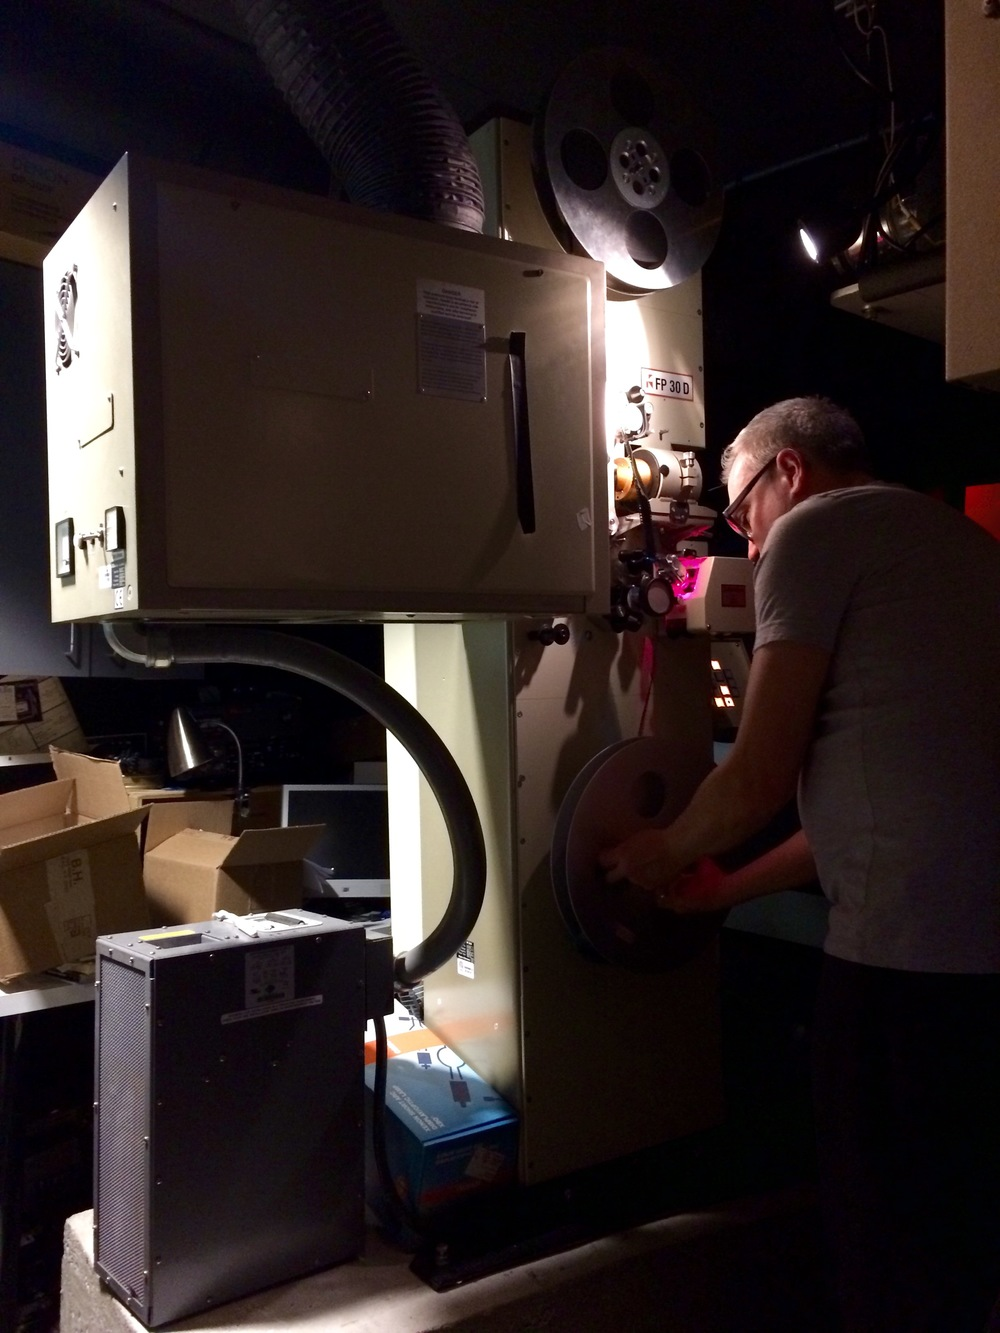 The master projectionist at work.